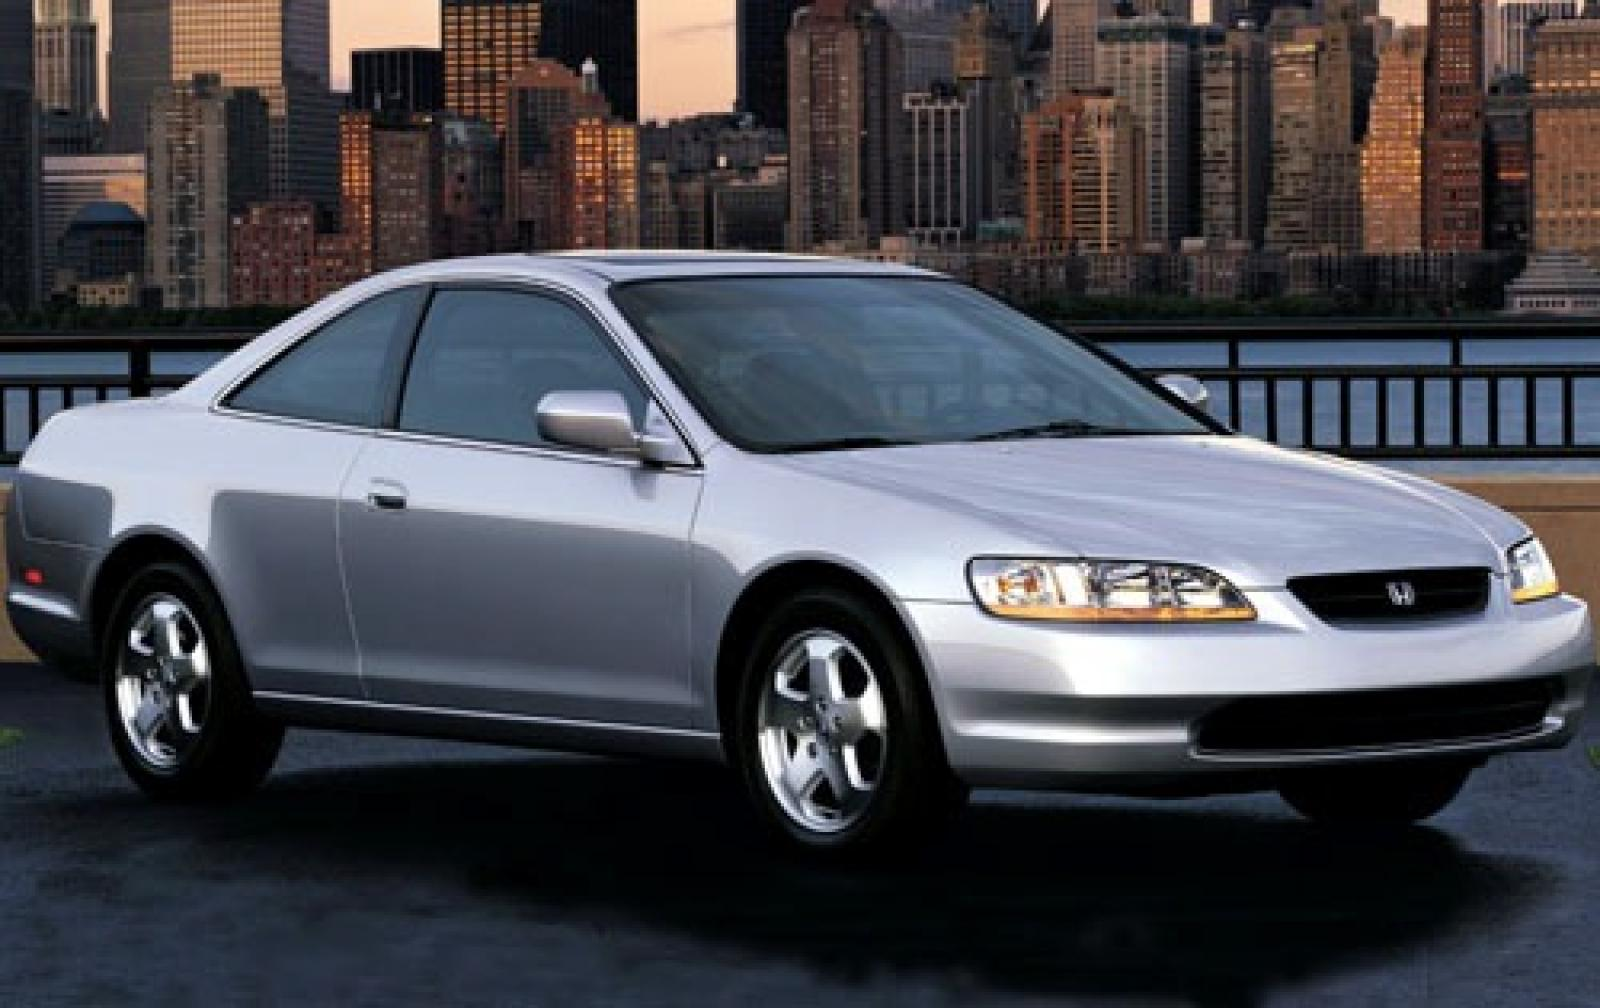 800 1024 1280 1600 origin 2001 Honda Accord ...